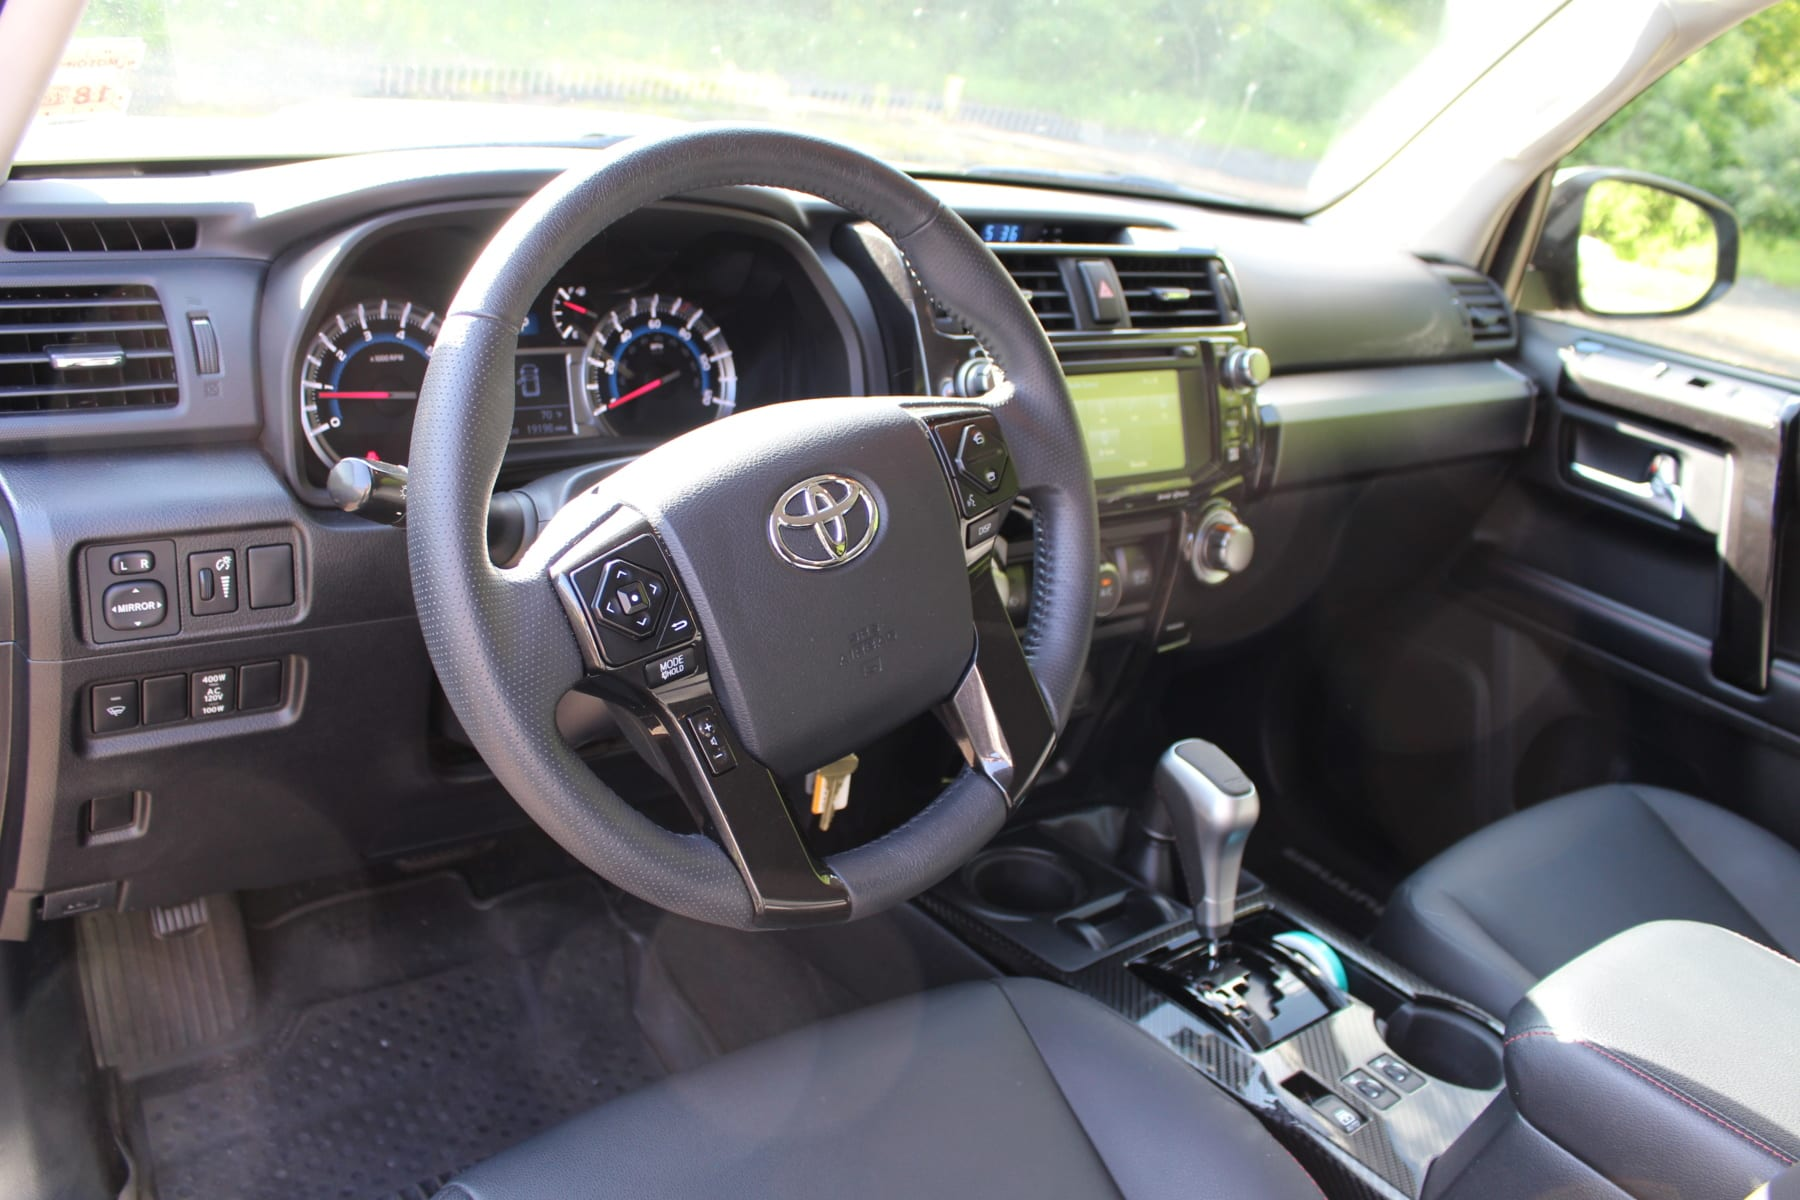 5th gen 4Runner interior